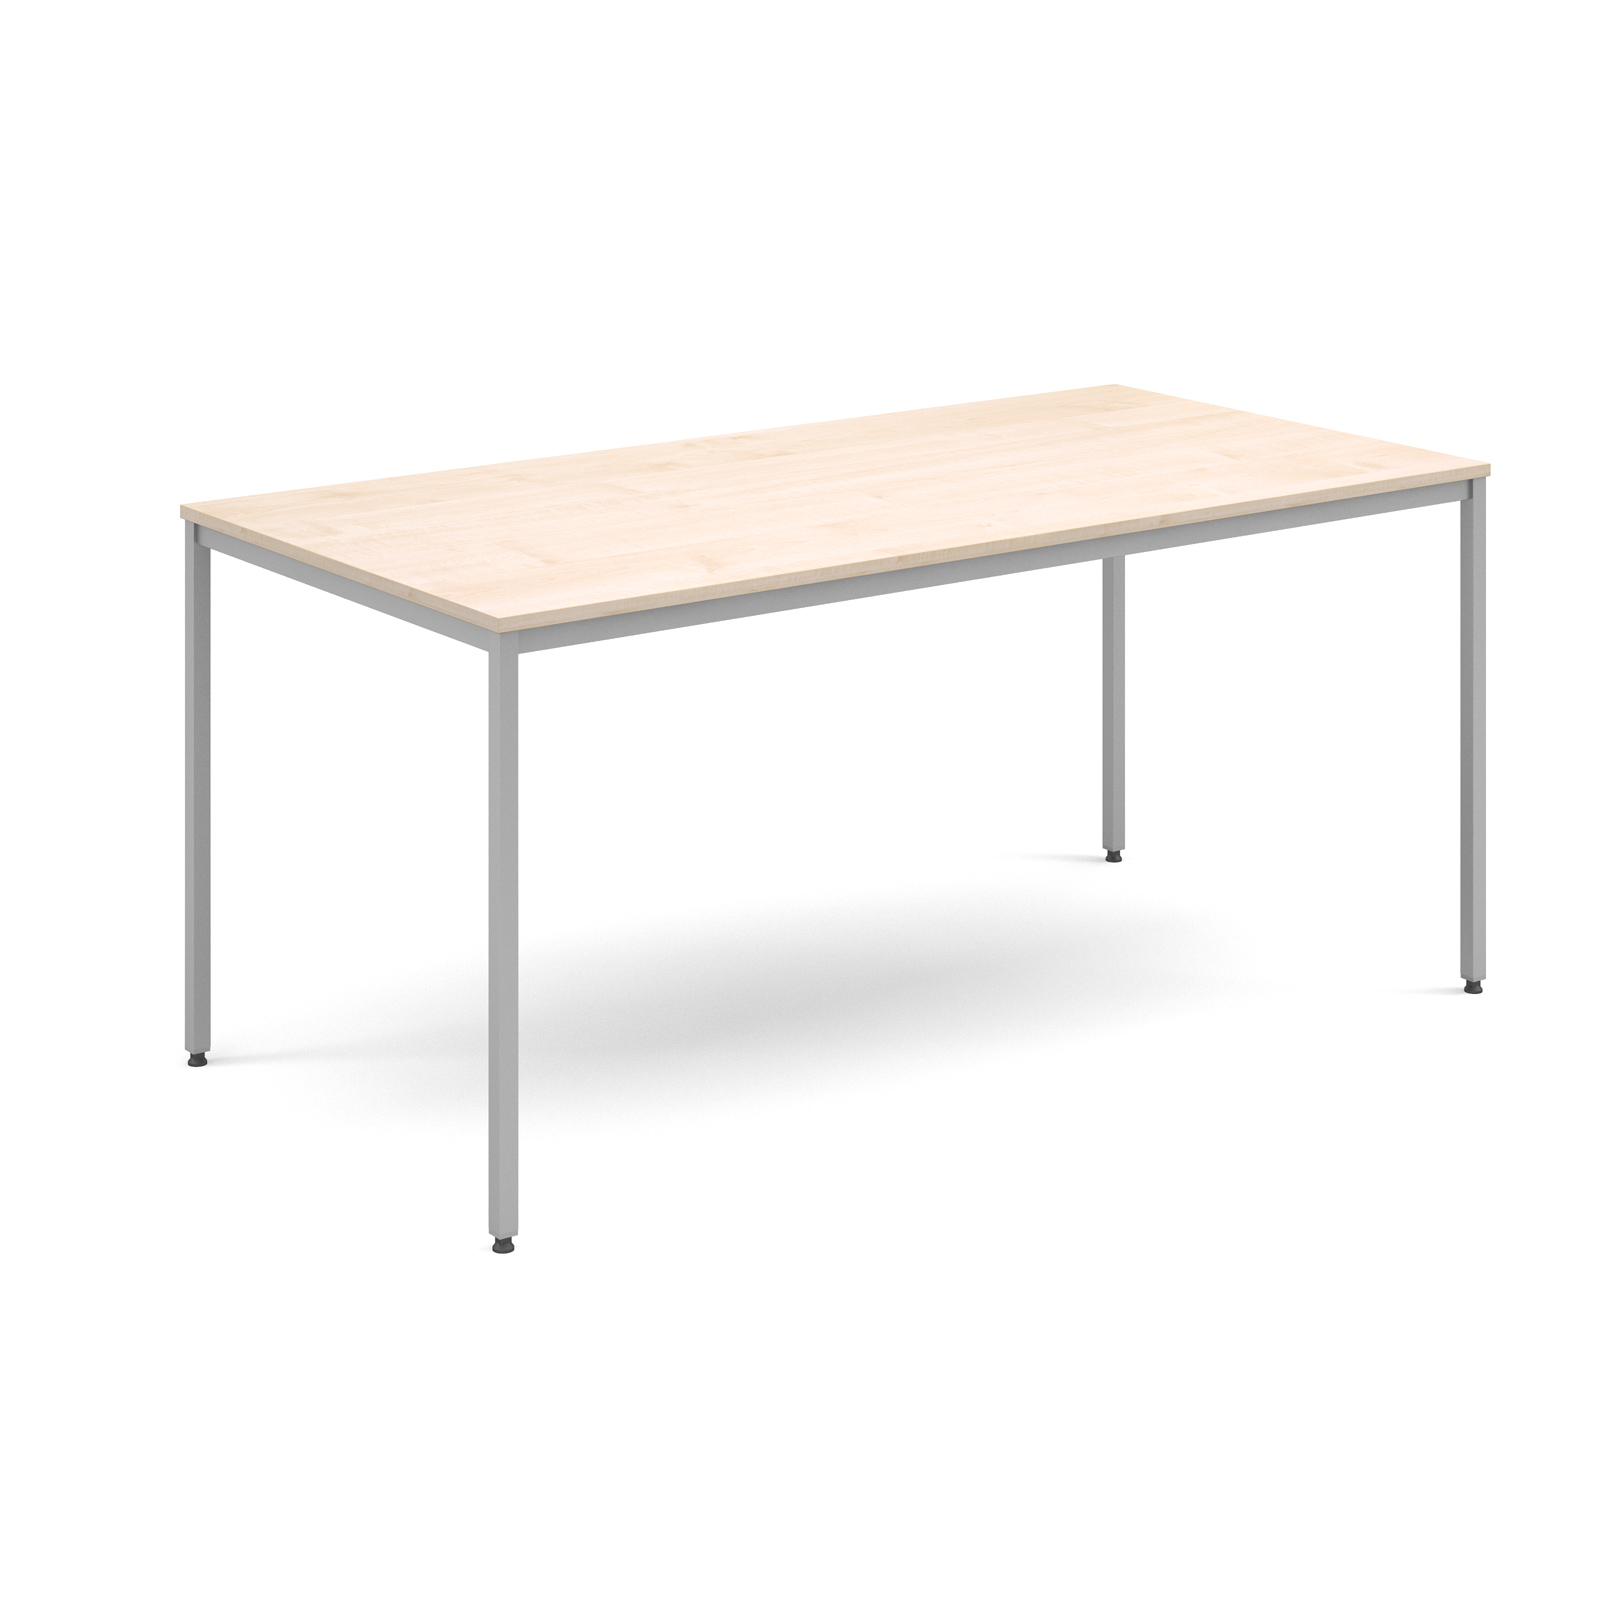 Rectangular flexi table with silver frame 1600mm x 800mm - maple